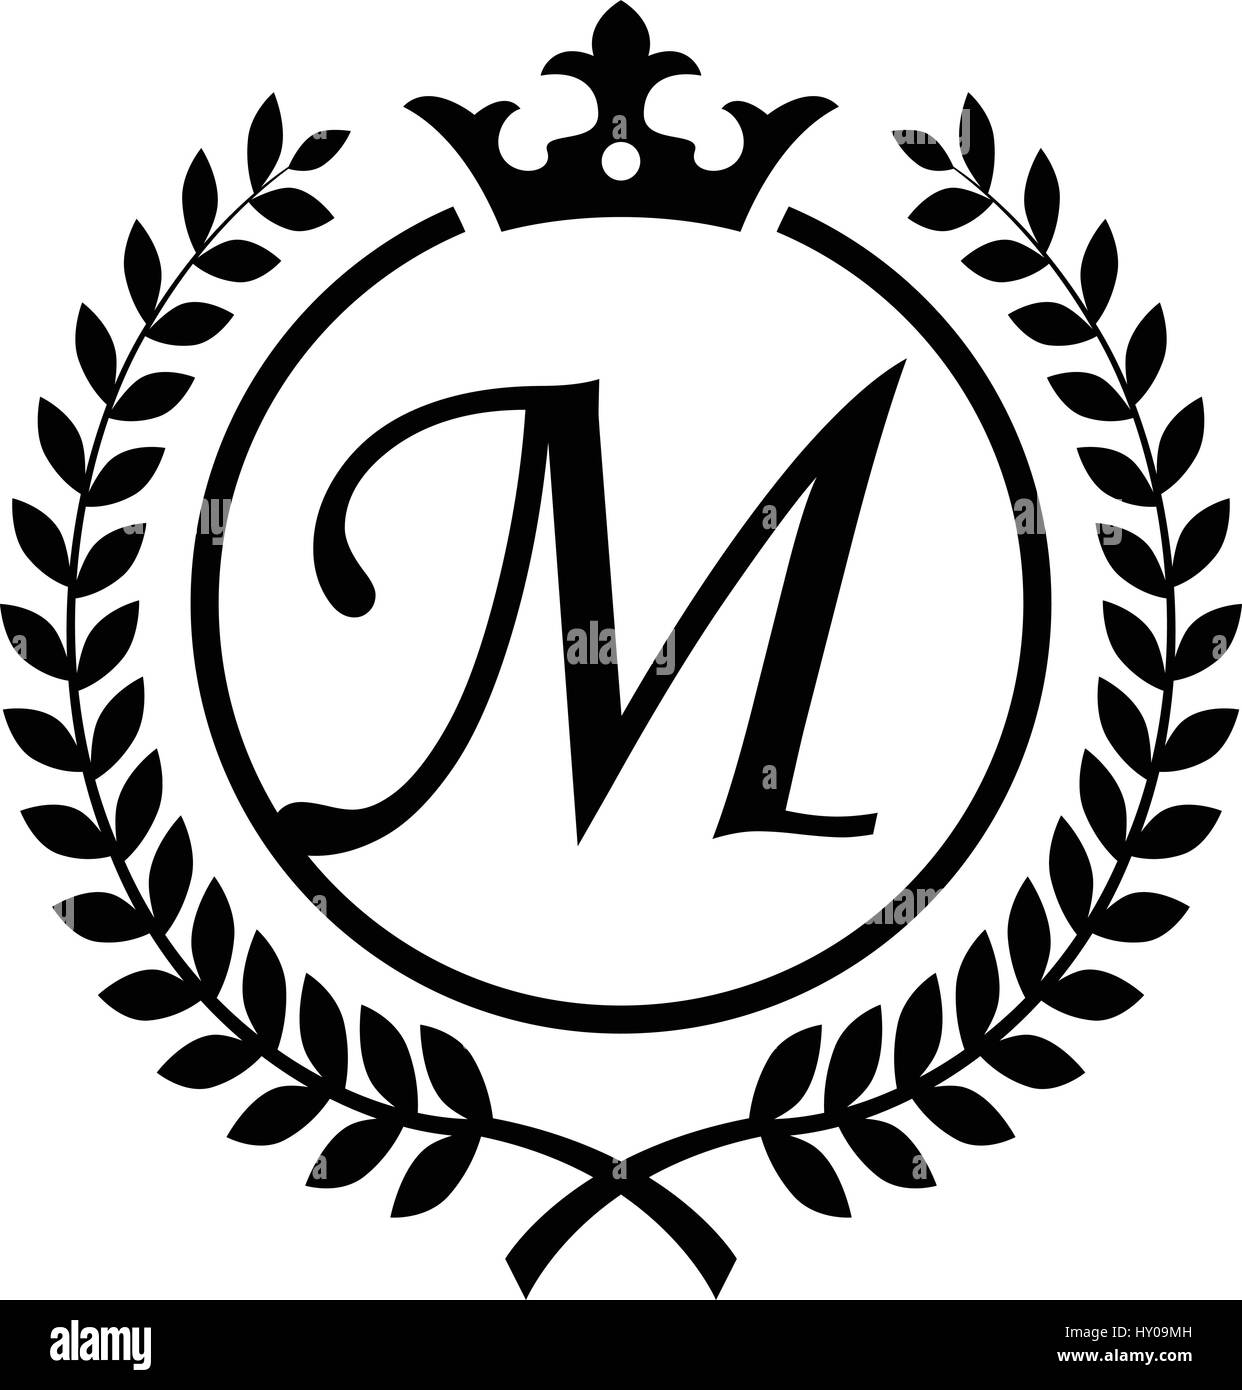 vintage letter m initial inside laurel wreath symbol design stock vector art illustration. Black Bedroom Furniture Sets. Home Design Ideas